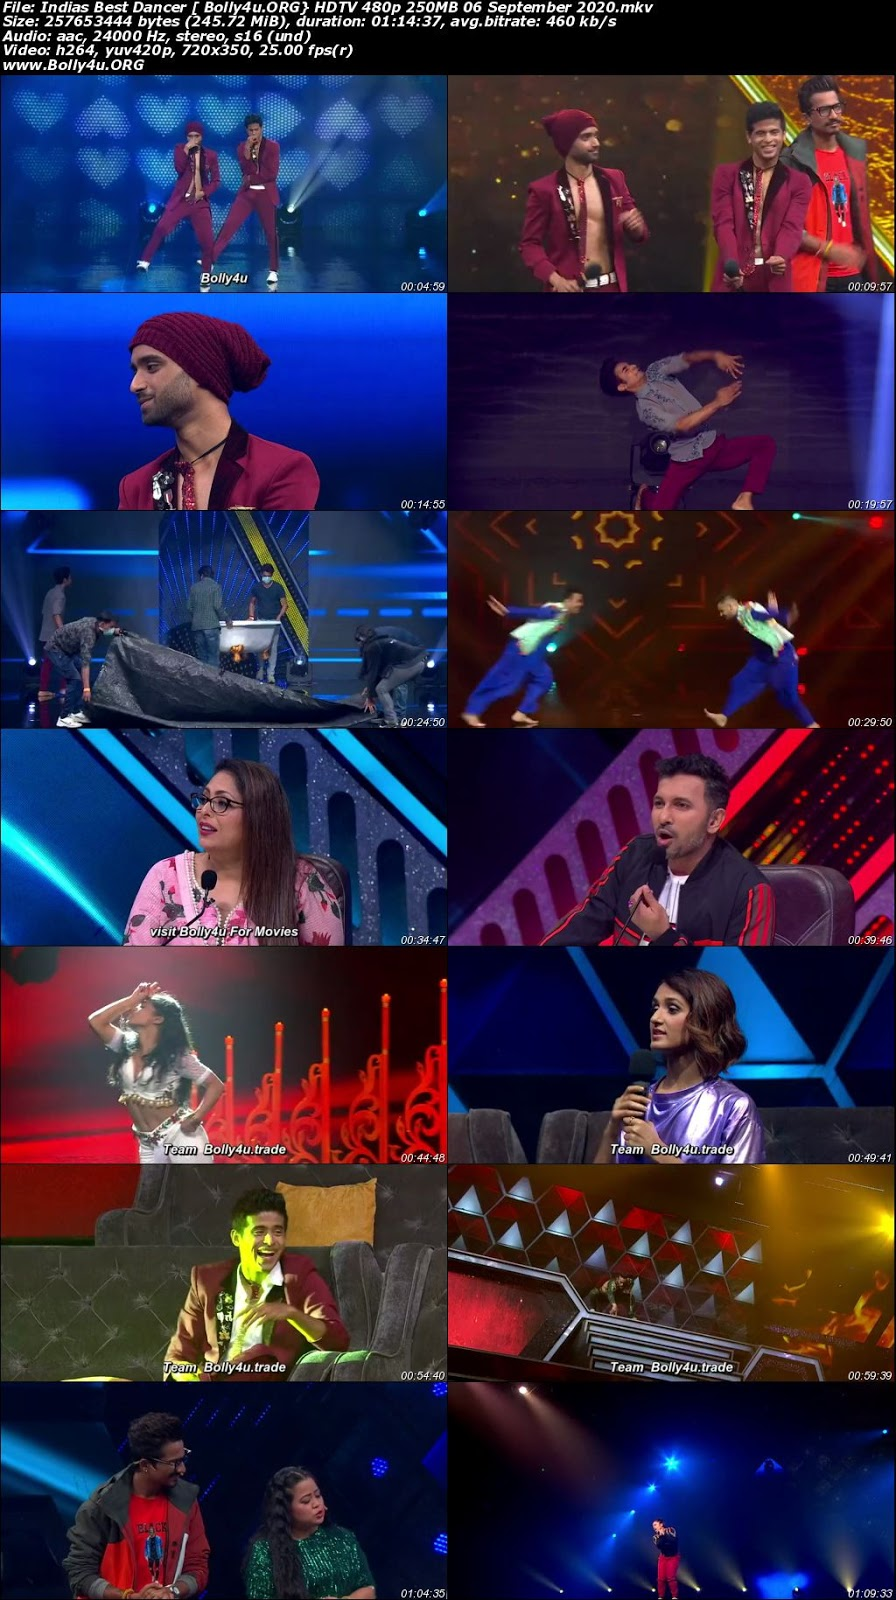 Indias Best Dancer HDTV 480p 250MB 06 September 2020 Download